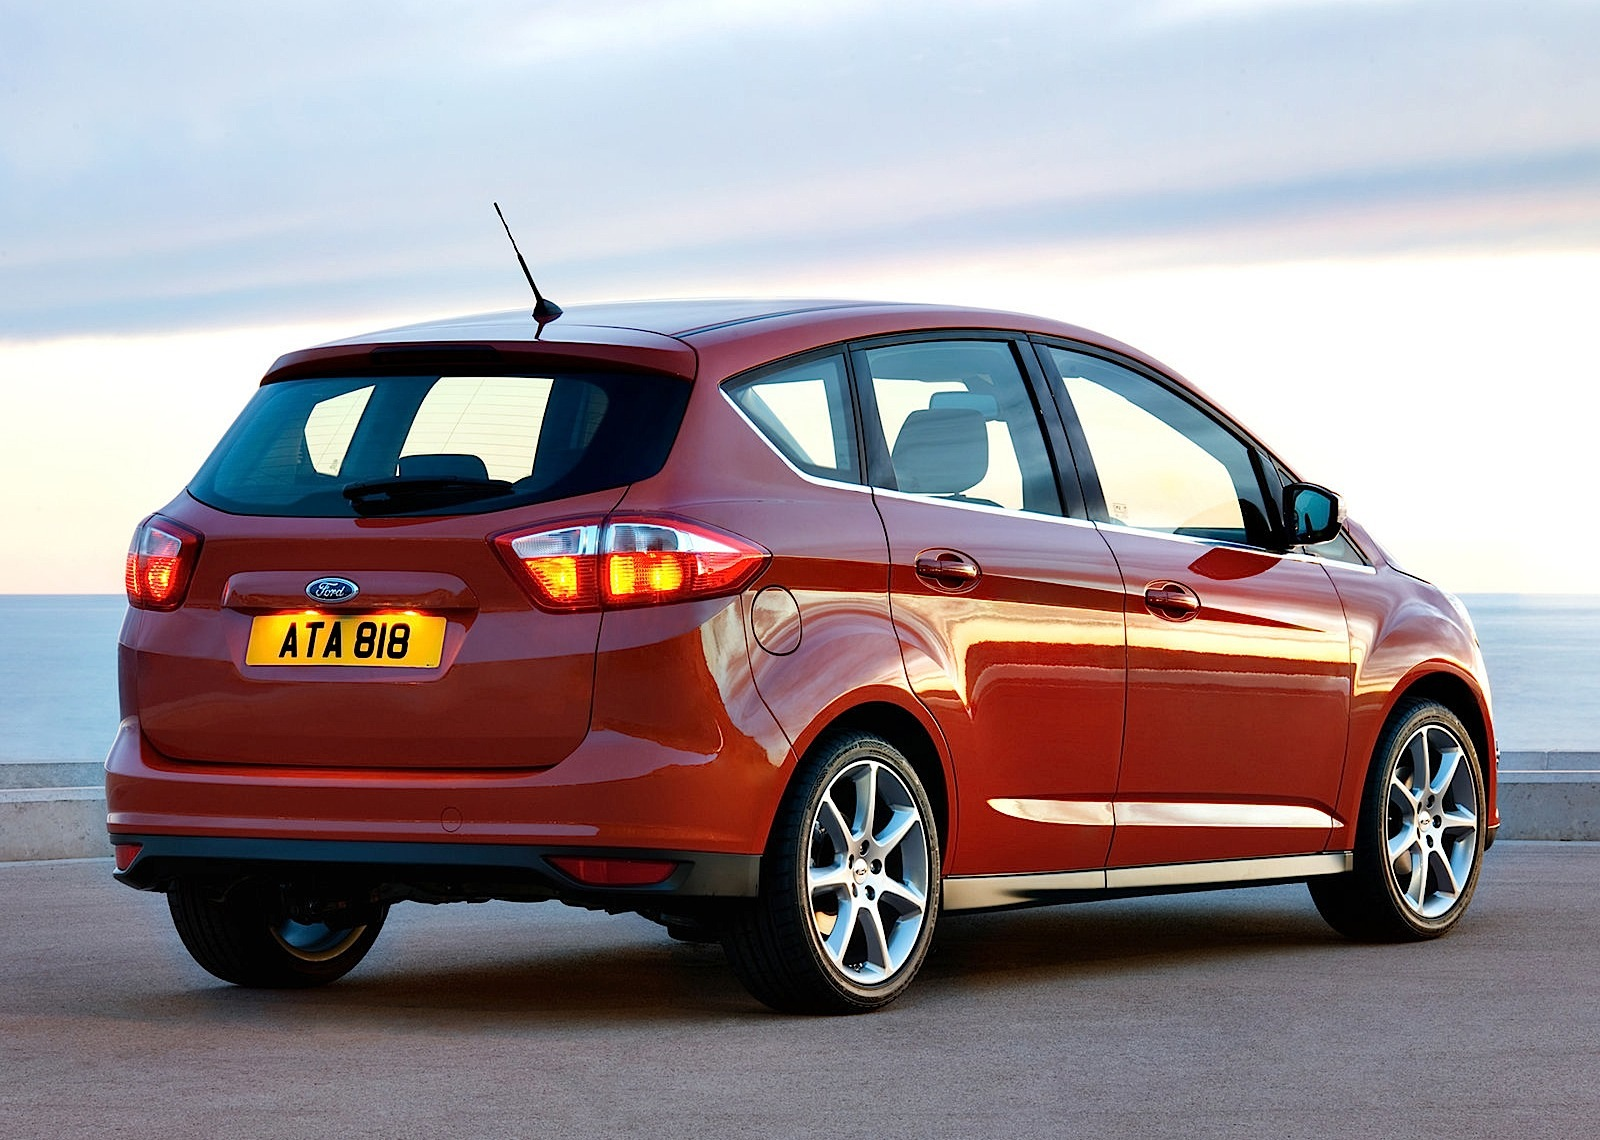 2011 Ford C-Max #18